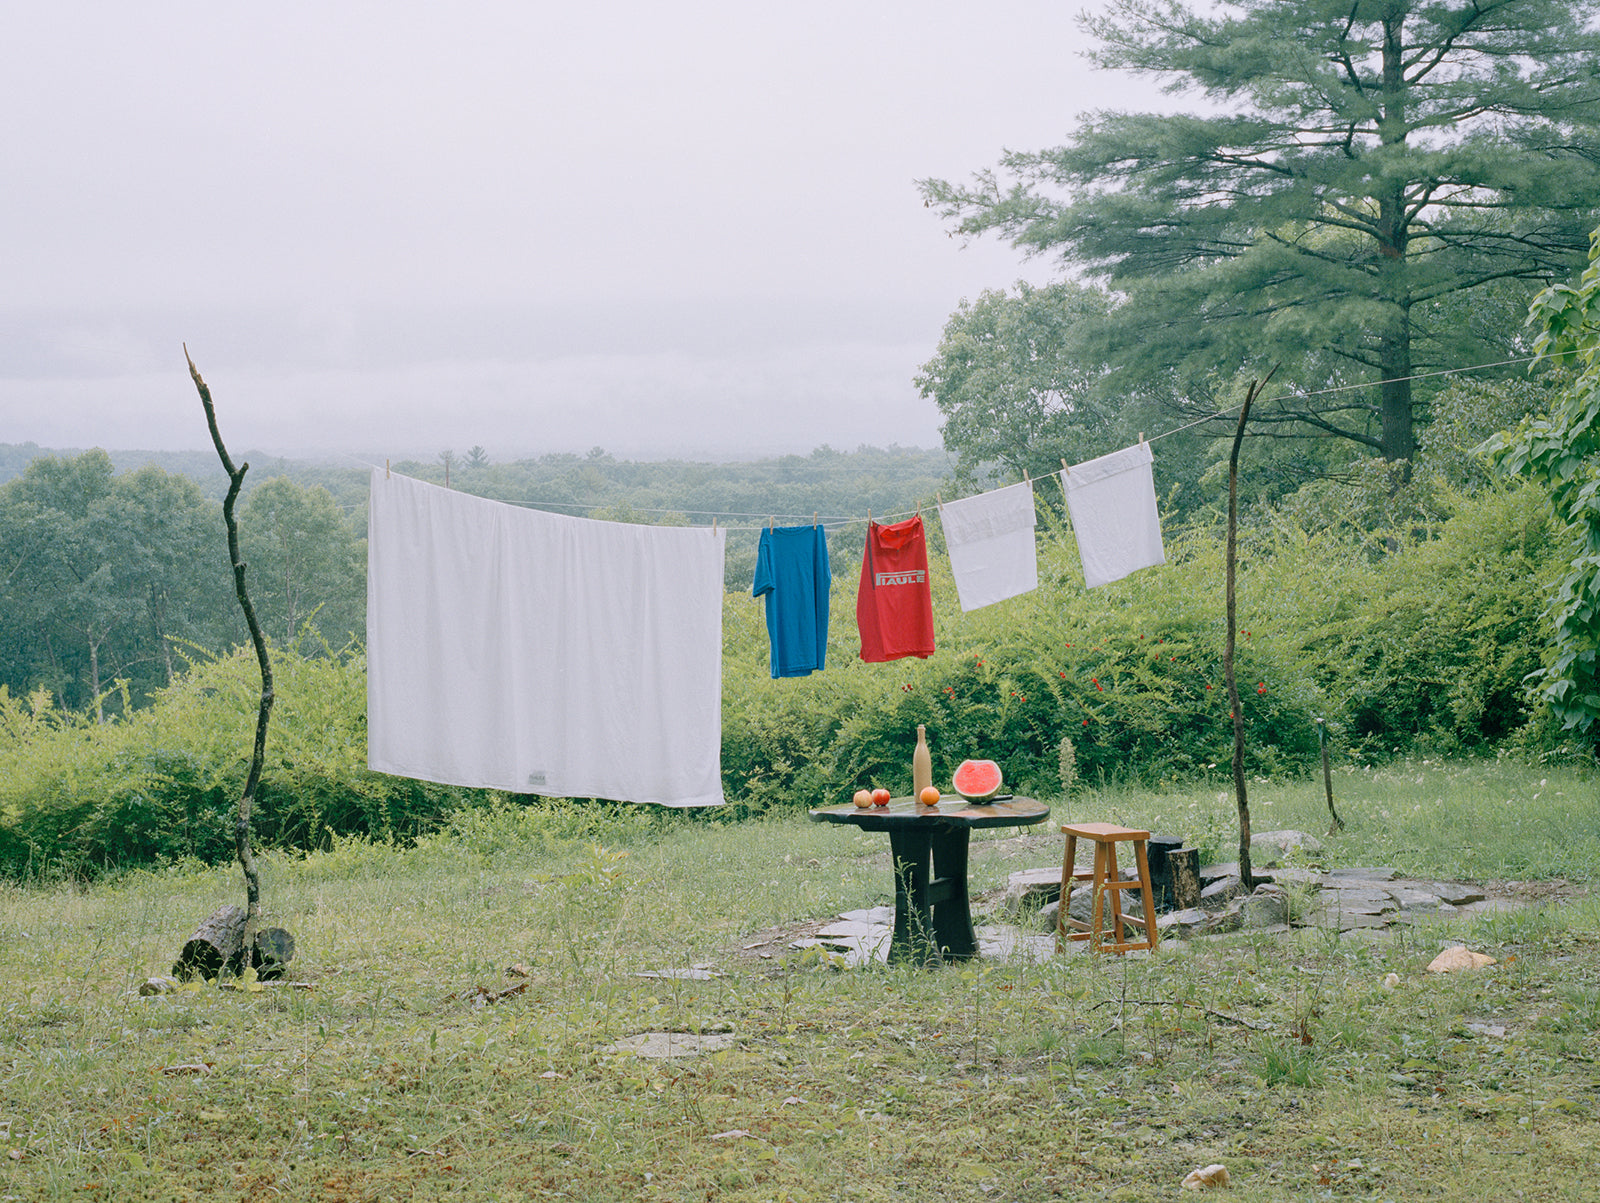 laundry line in nature in upstate new york drying the best white sheets and clothing